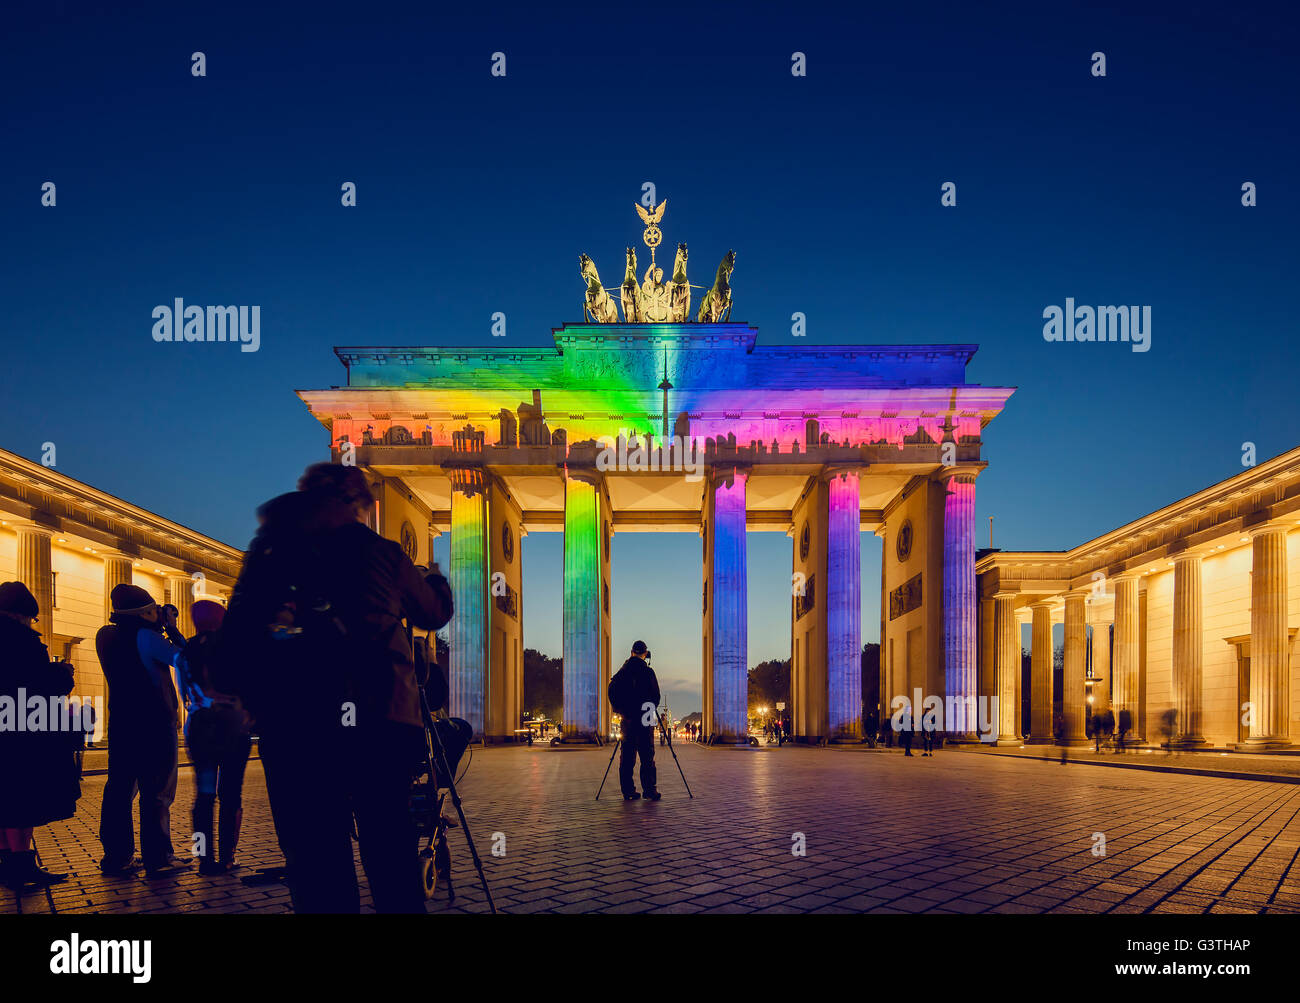 Germany, Berlin, Brandenburg Gate, View of colorful illumination at dusk - Stock Image